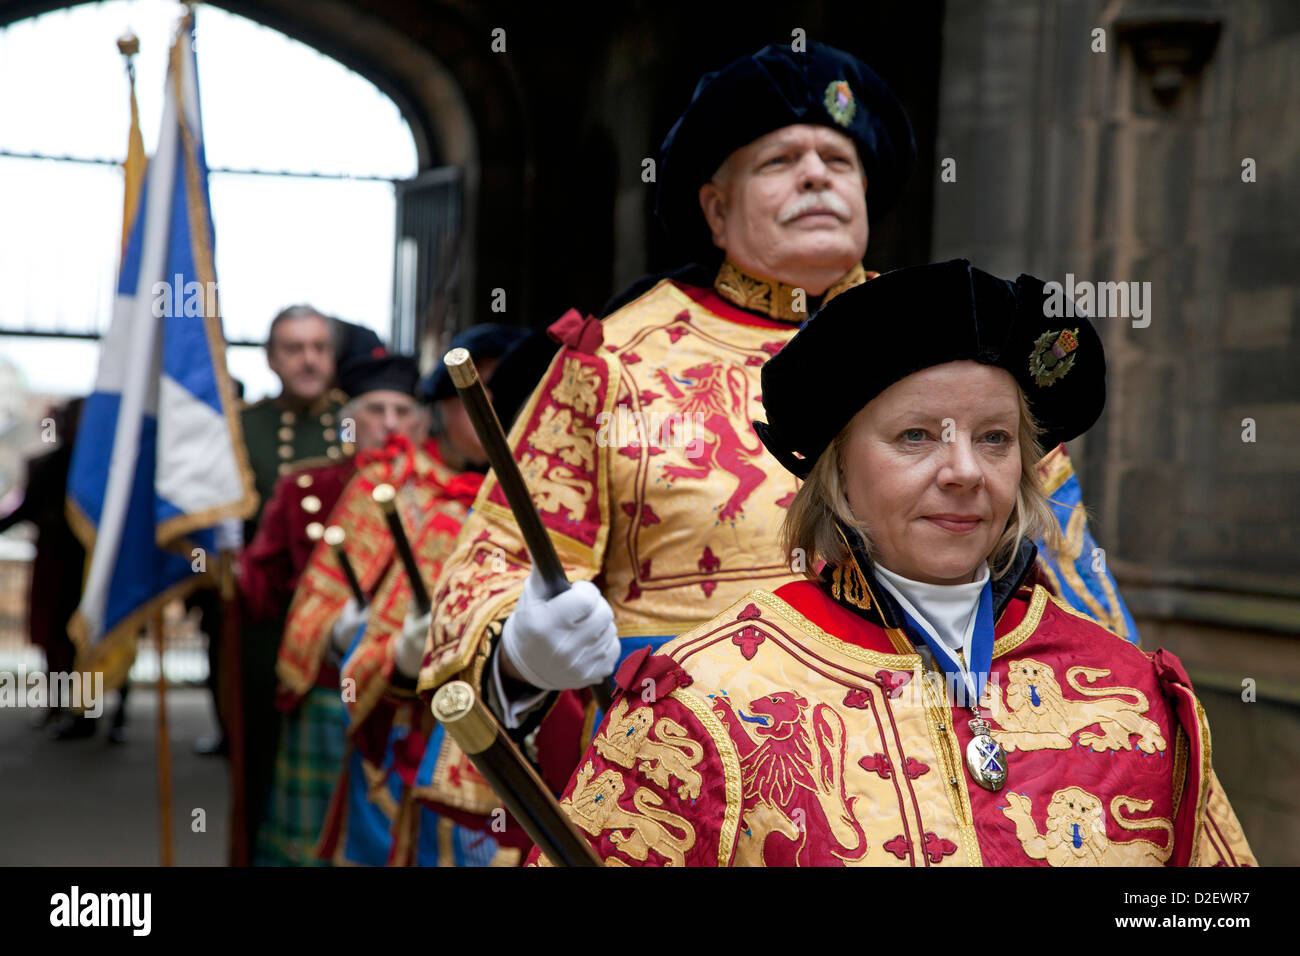 The procession assembles for The General Assembly of the Church of Scotland 2012 - Stock Image